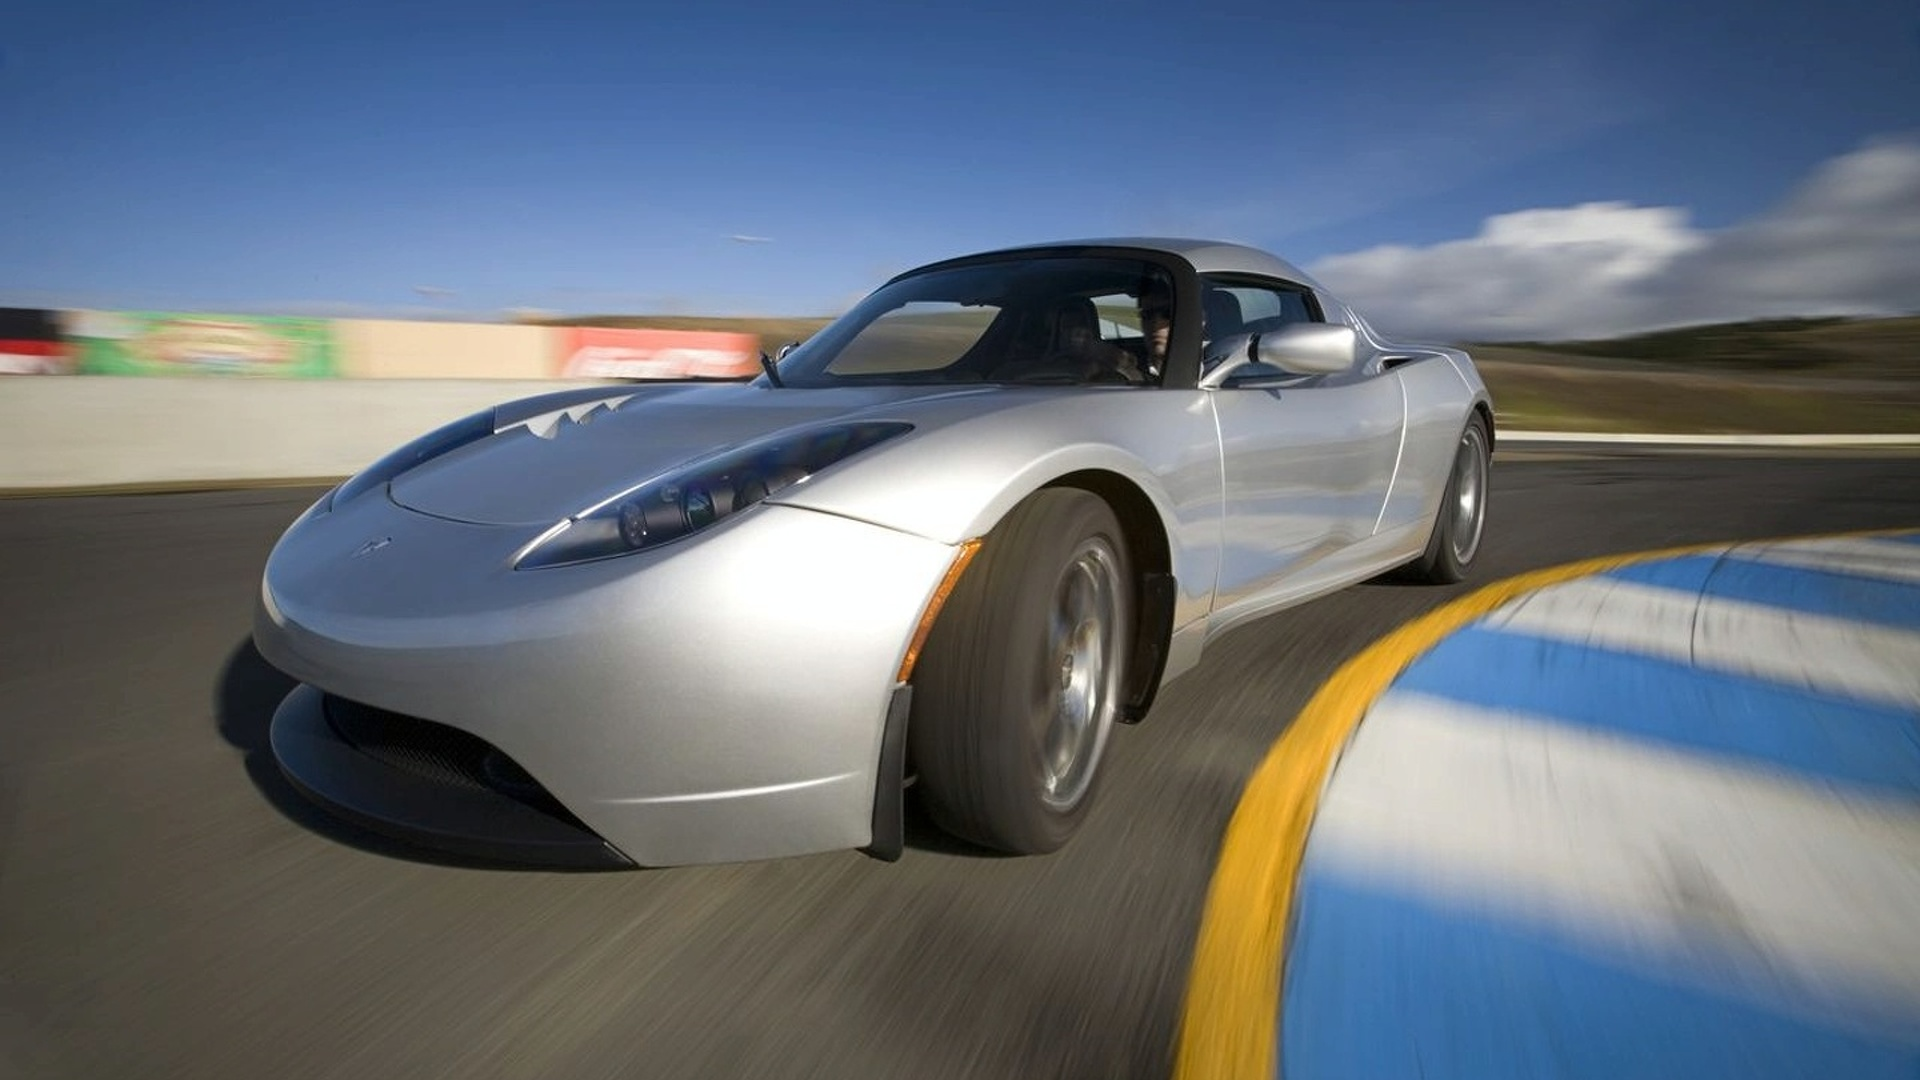 Tesla Roadster 3.0 package officially announced